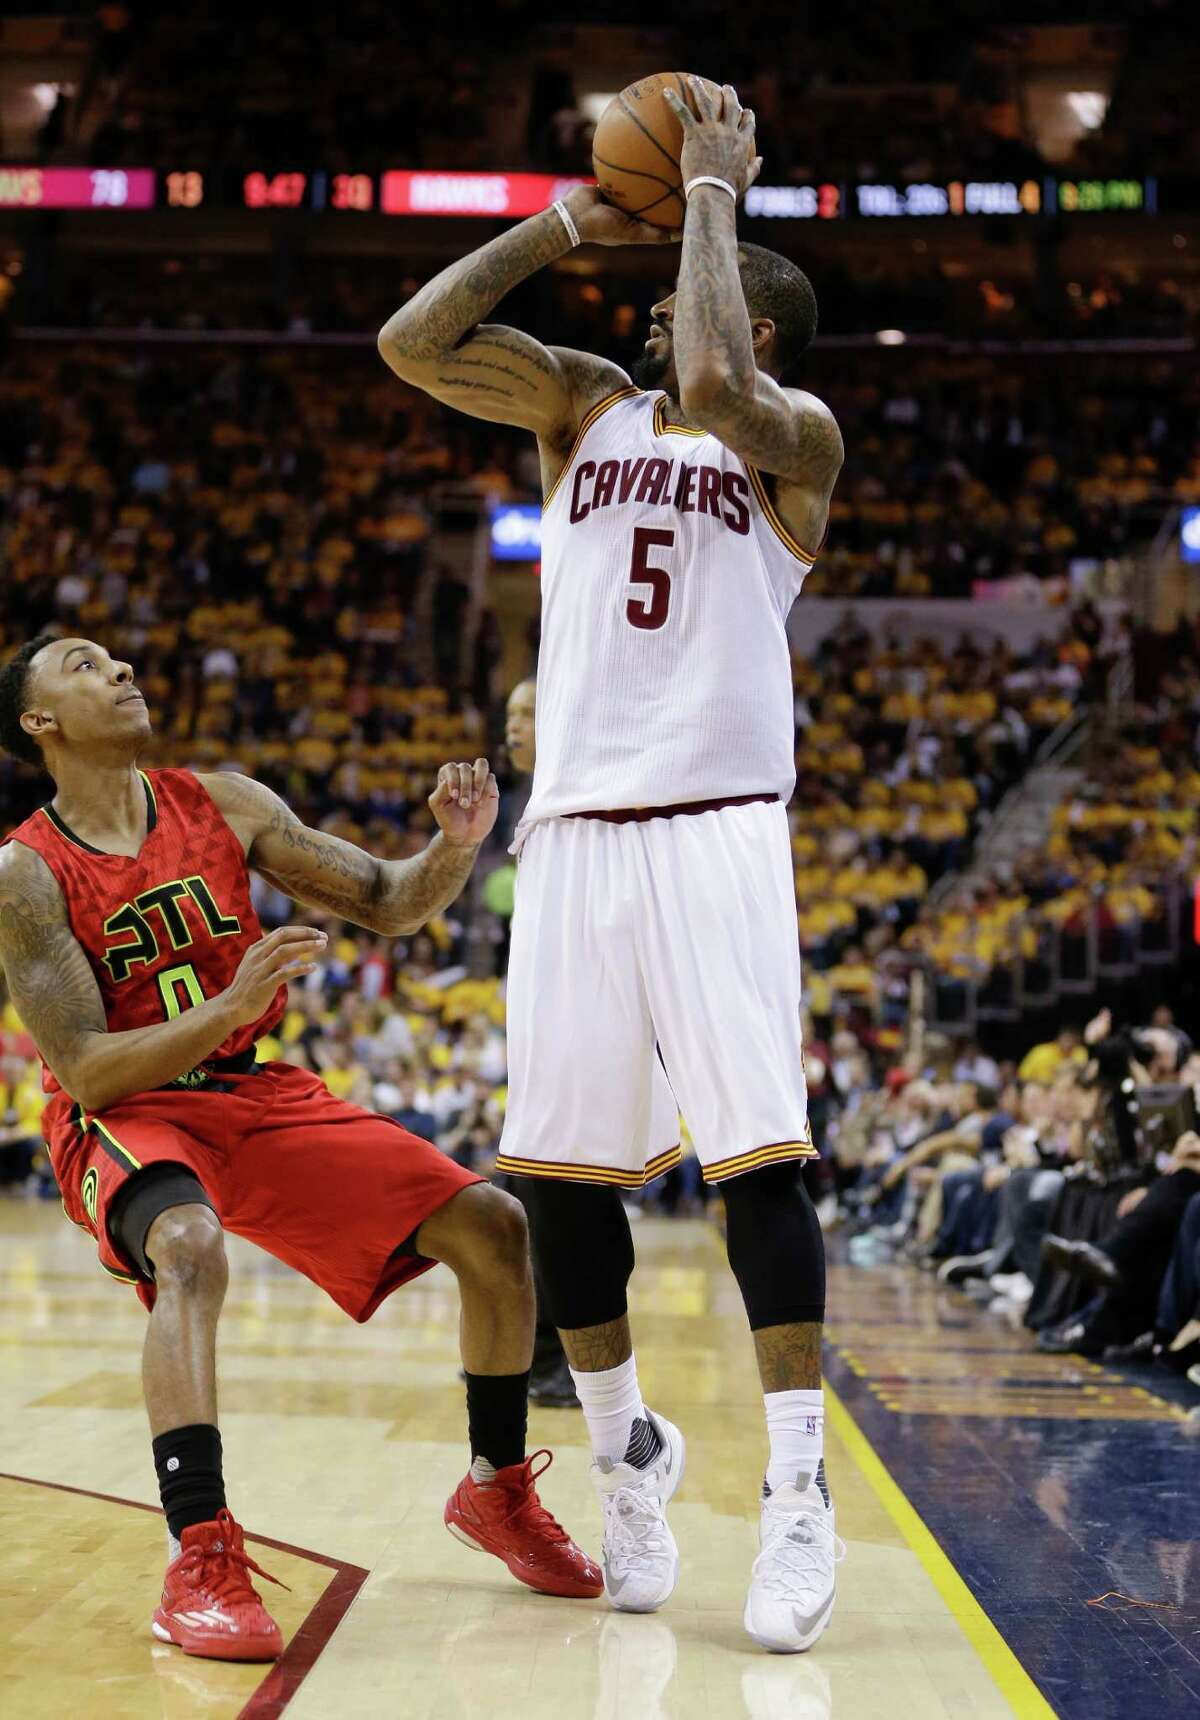 Cleveland Cavaliers guard J.R. Smith (5) puts up a 3-point shot against Atlanta Hawks guard Jeff Teague (0) in the second half during Game 2 of a second-round NBA basketball playoff series, Wednesday, May 4, 2016, in Cleveland. (AP Photo/Tony Dejak)